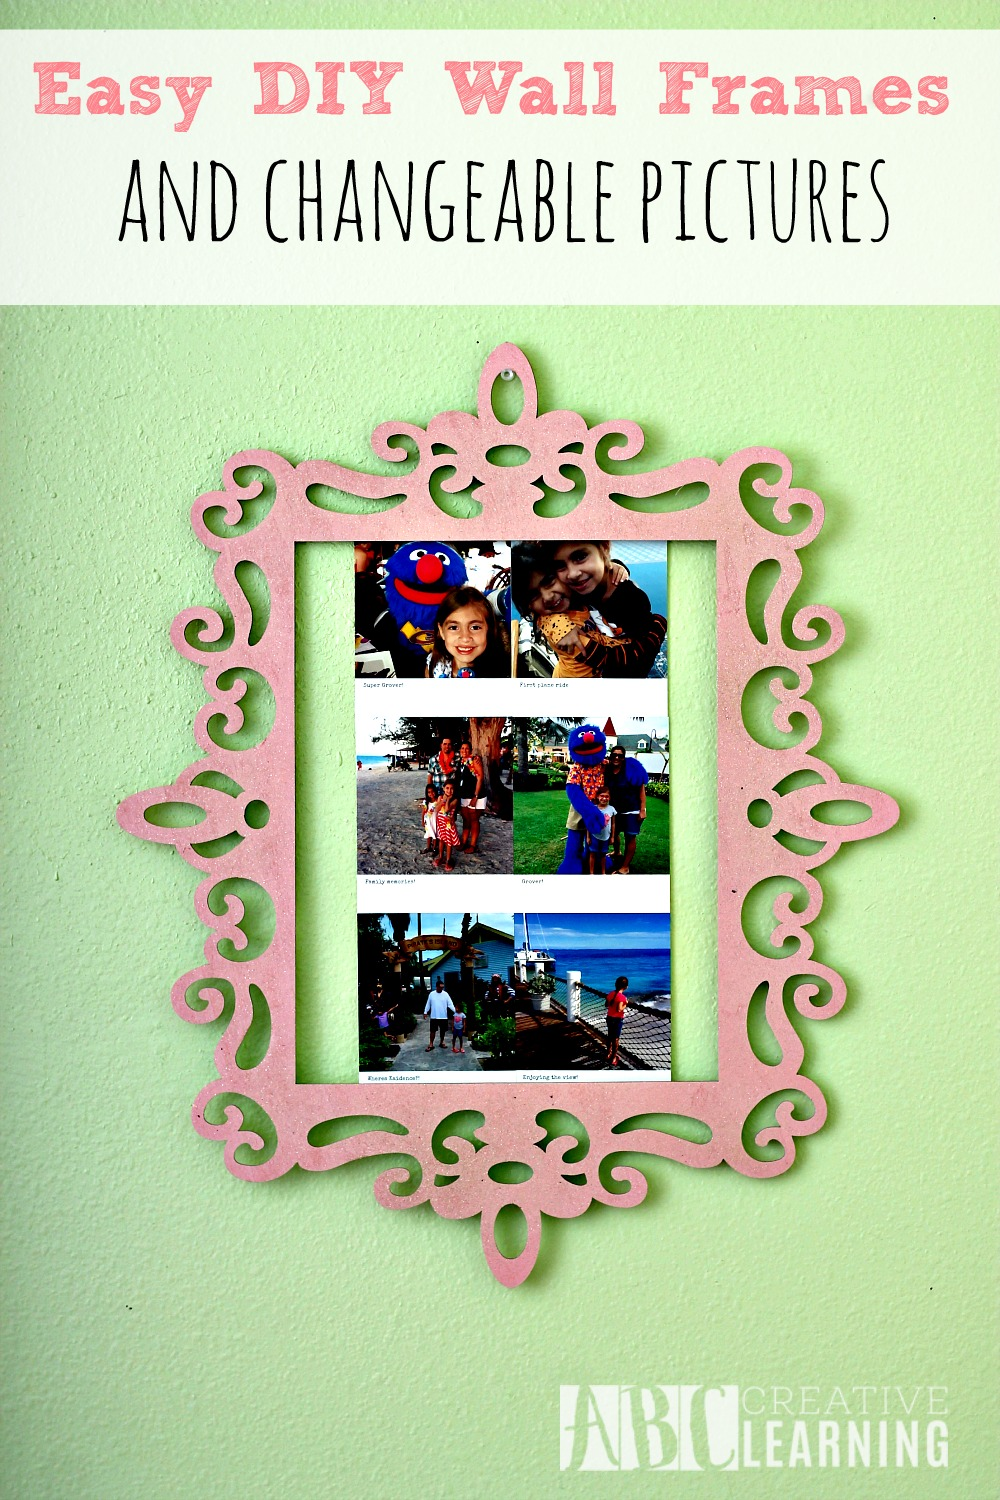 Easy Diy Wall Frames And Changeable Pictures  Simply. Est Decals. Sketchnote Banners. Create Your Sticker. Friend Quote Lettering. South Florida Bulls Logo. Fairytale Castle Murals. White Road Signs Of Stroke. Division Signs